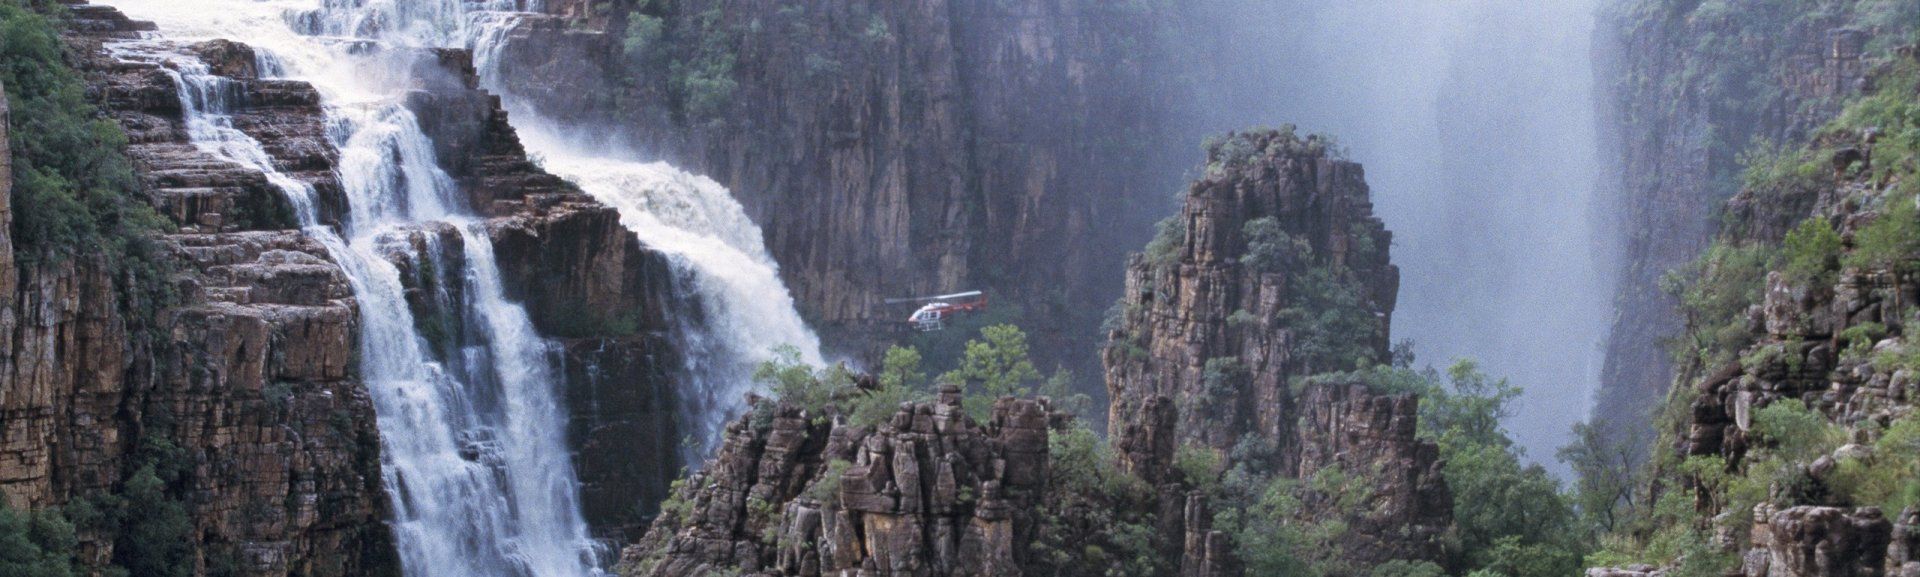 Helicopter over Twin Falls. Photo: Tourism NT